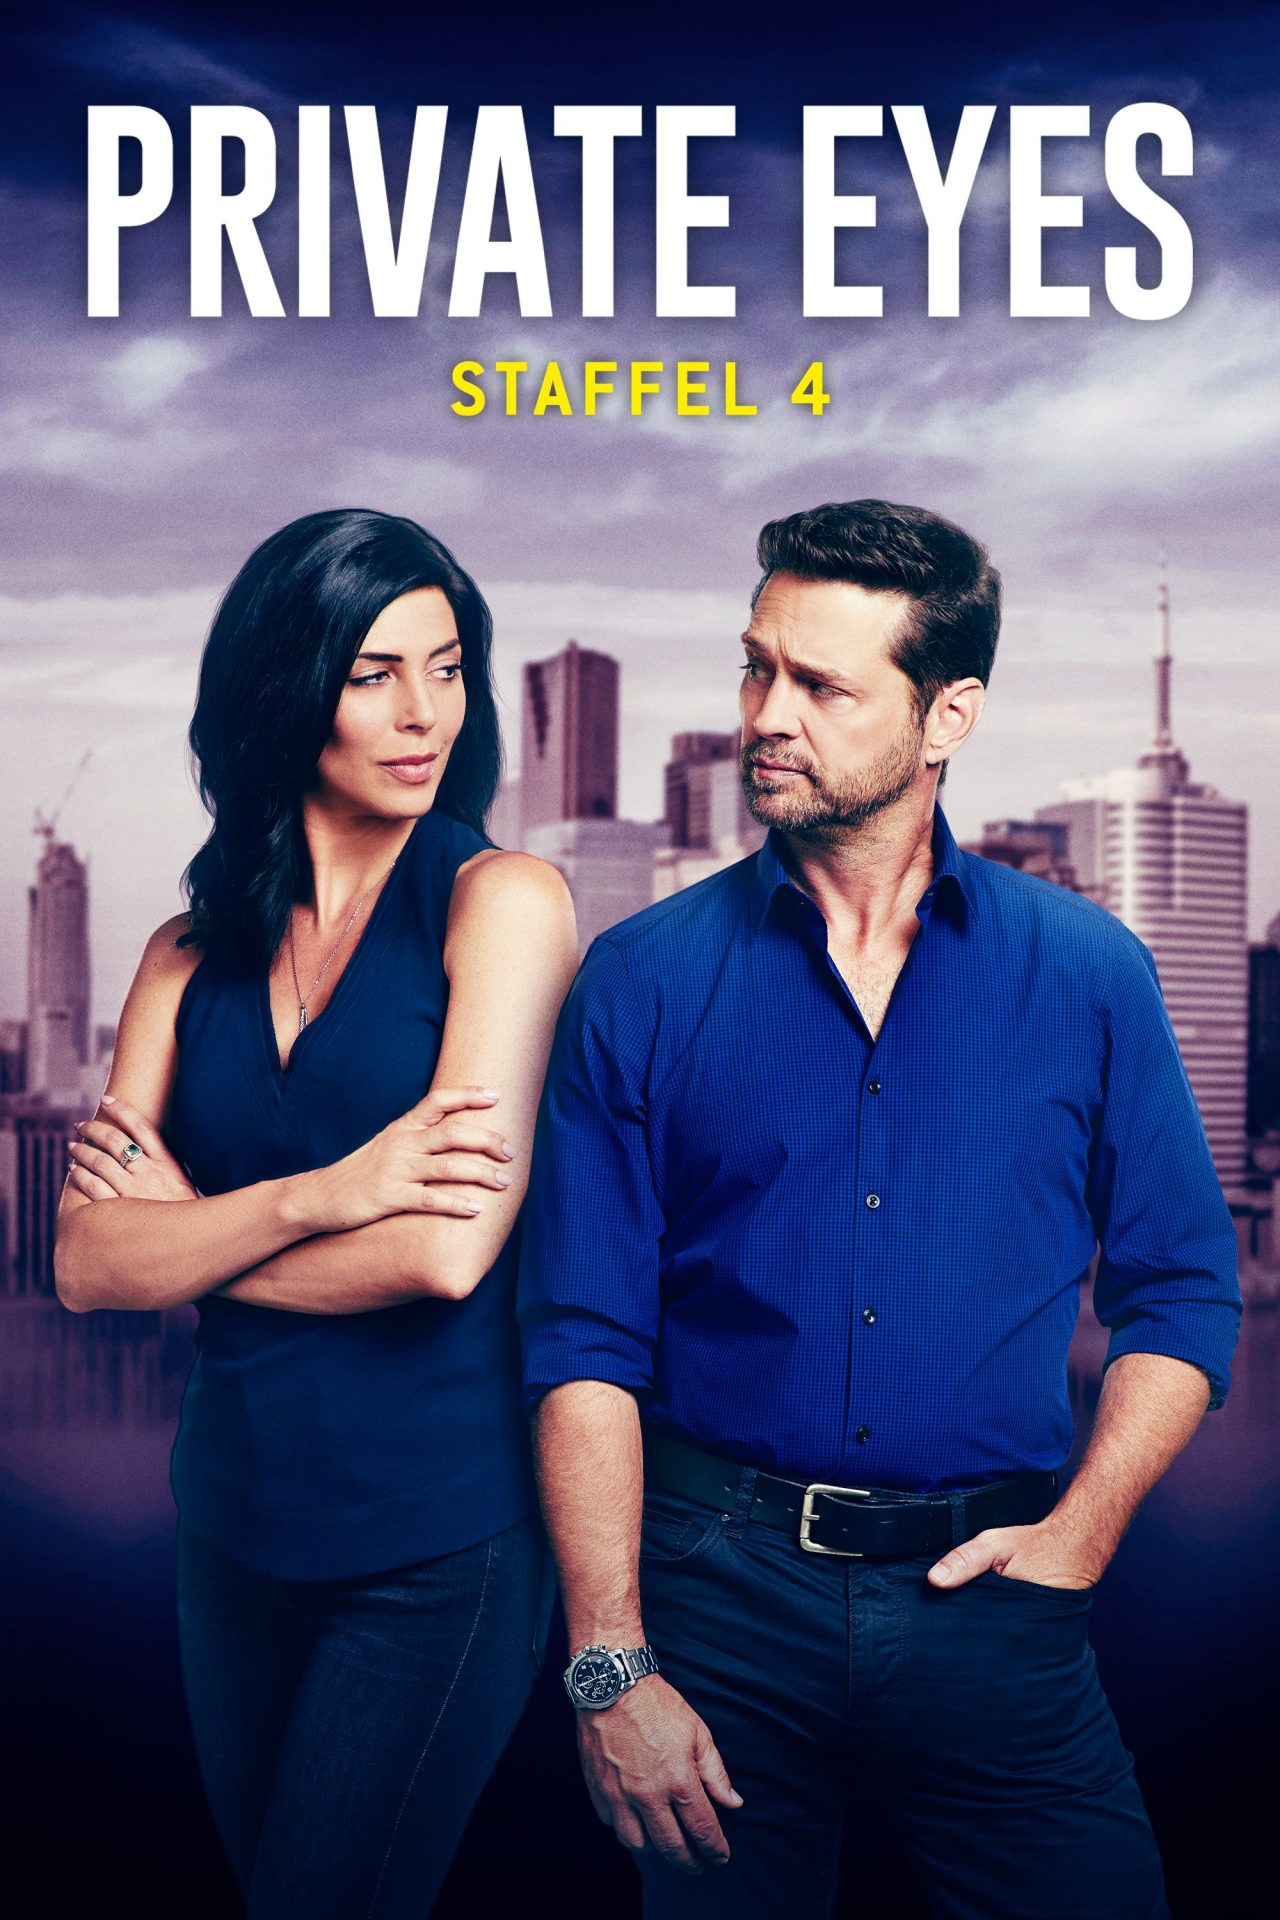 Private Eyes Staffel 4